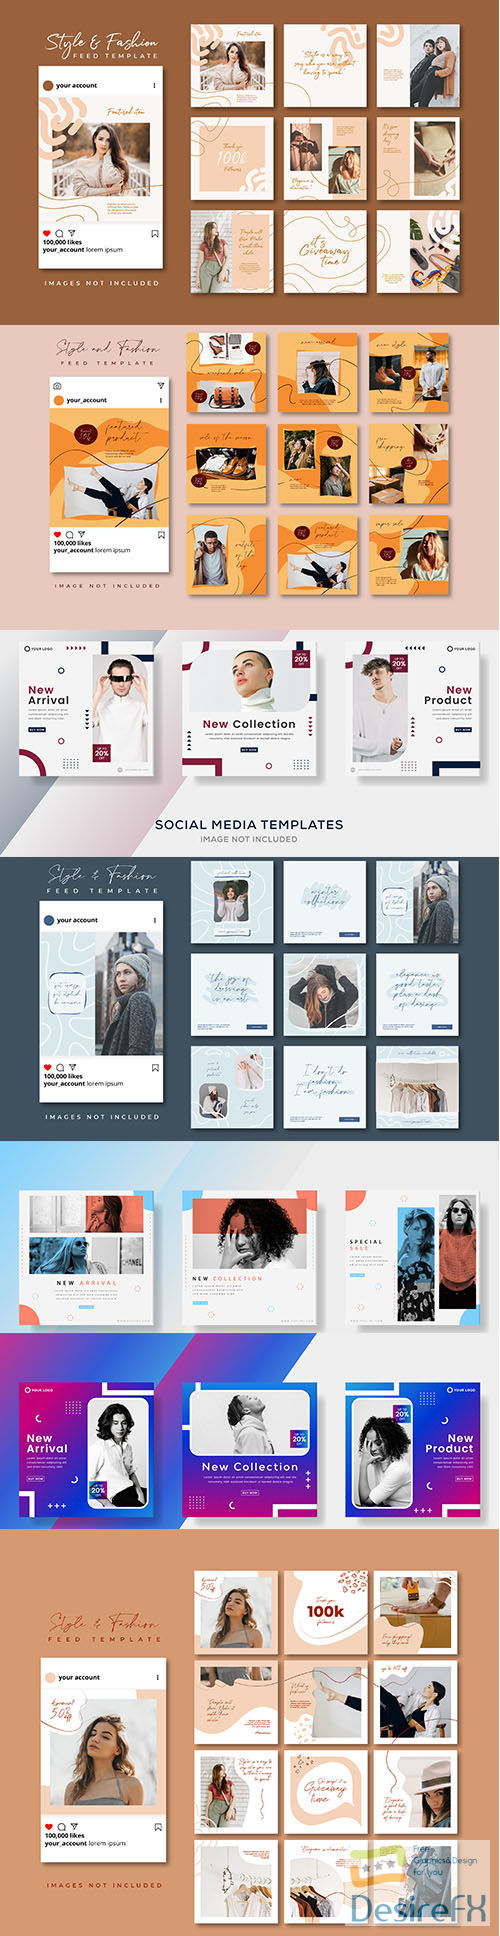 Abstract banners template social media post